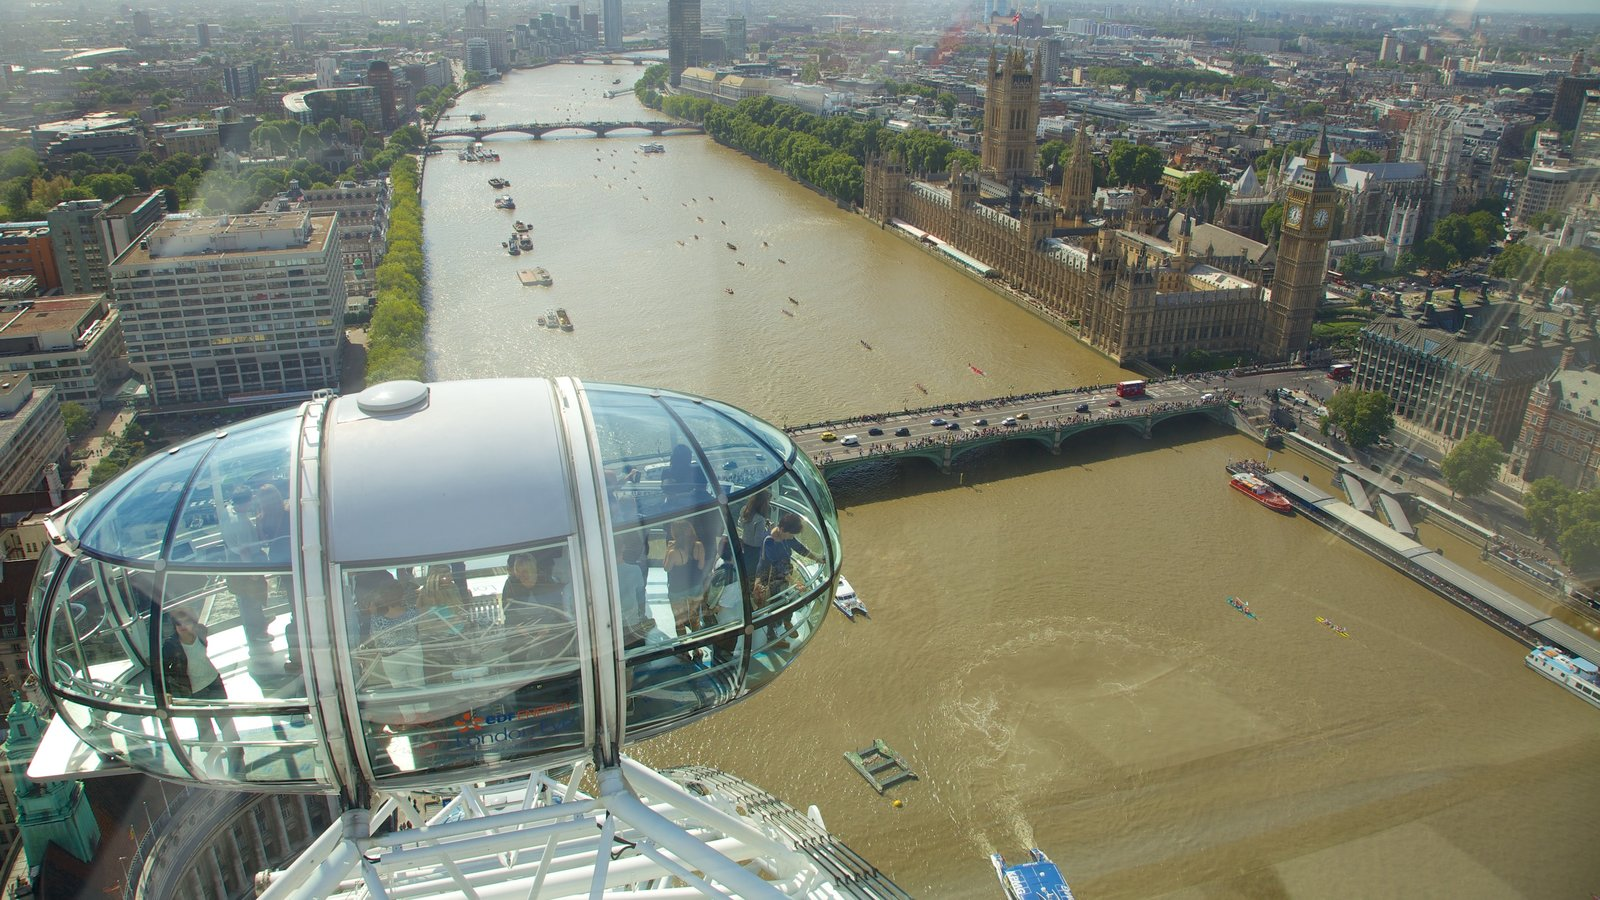 London Eye ofreciendo una góndola, una ciudad y vistas